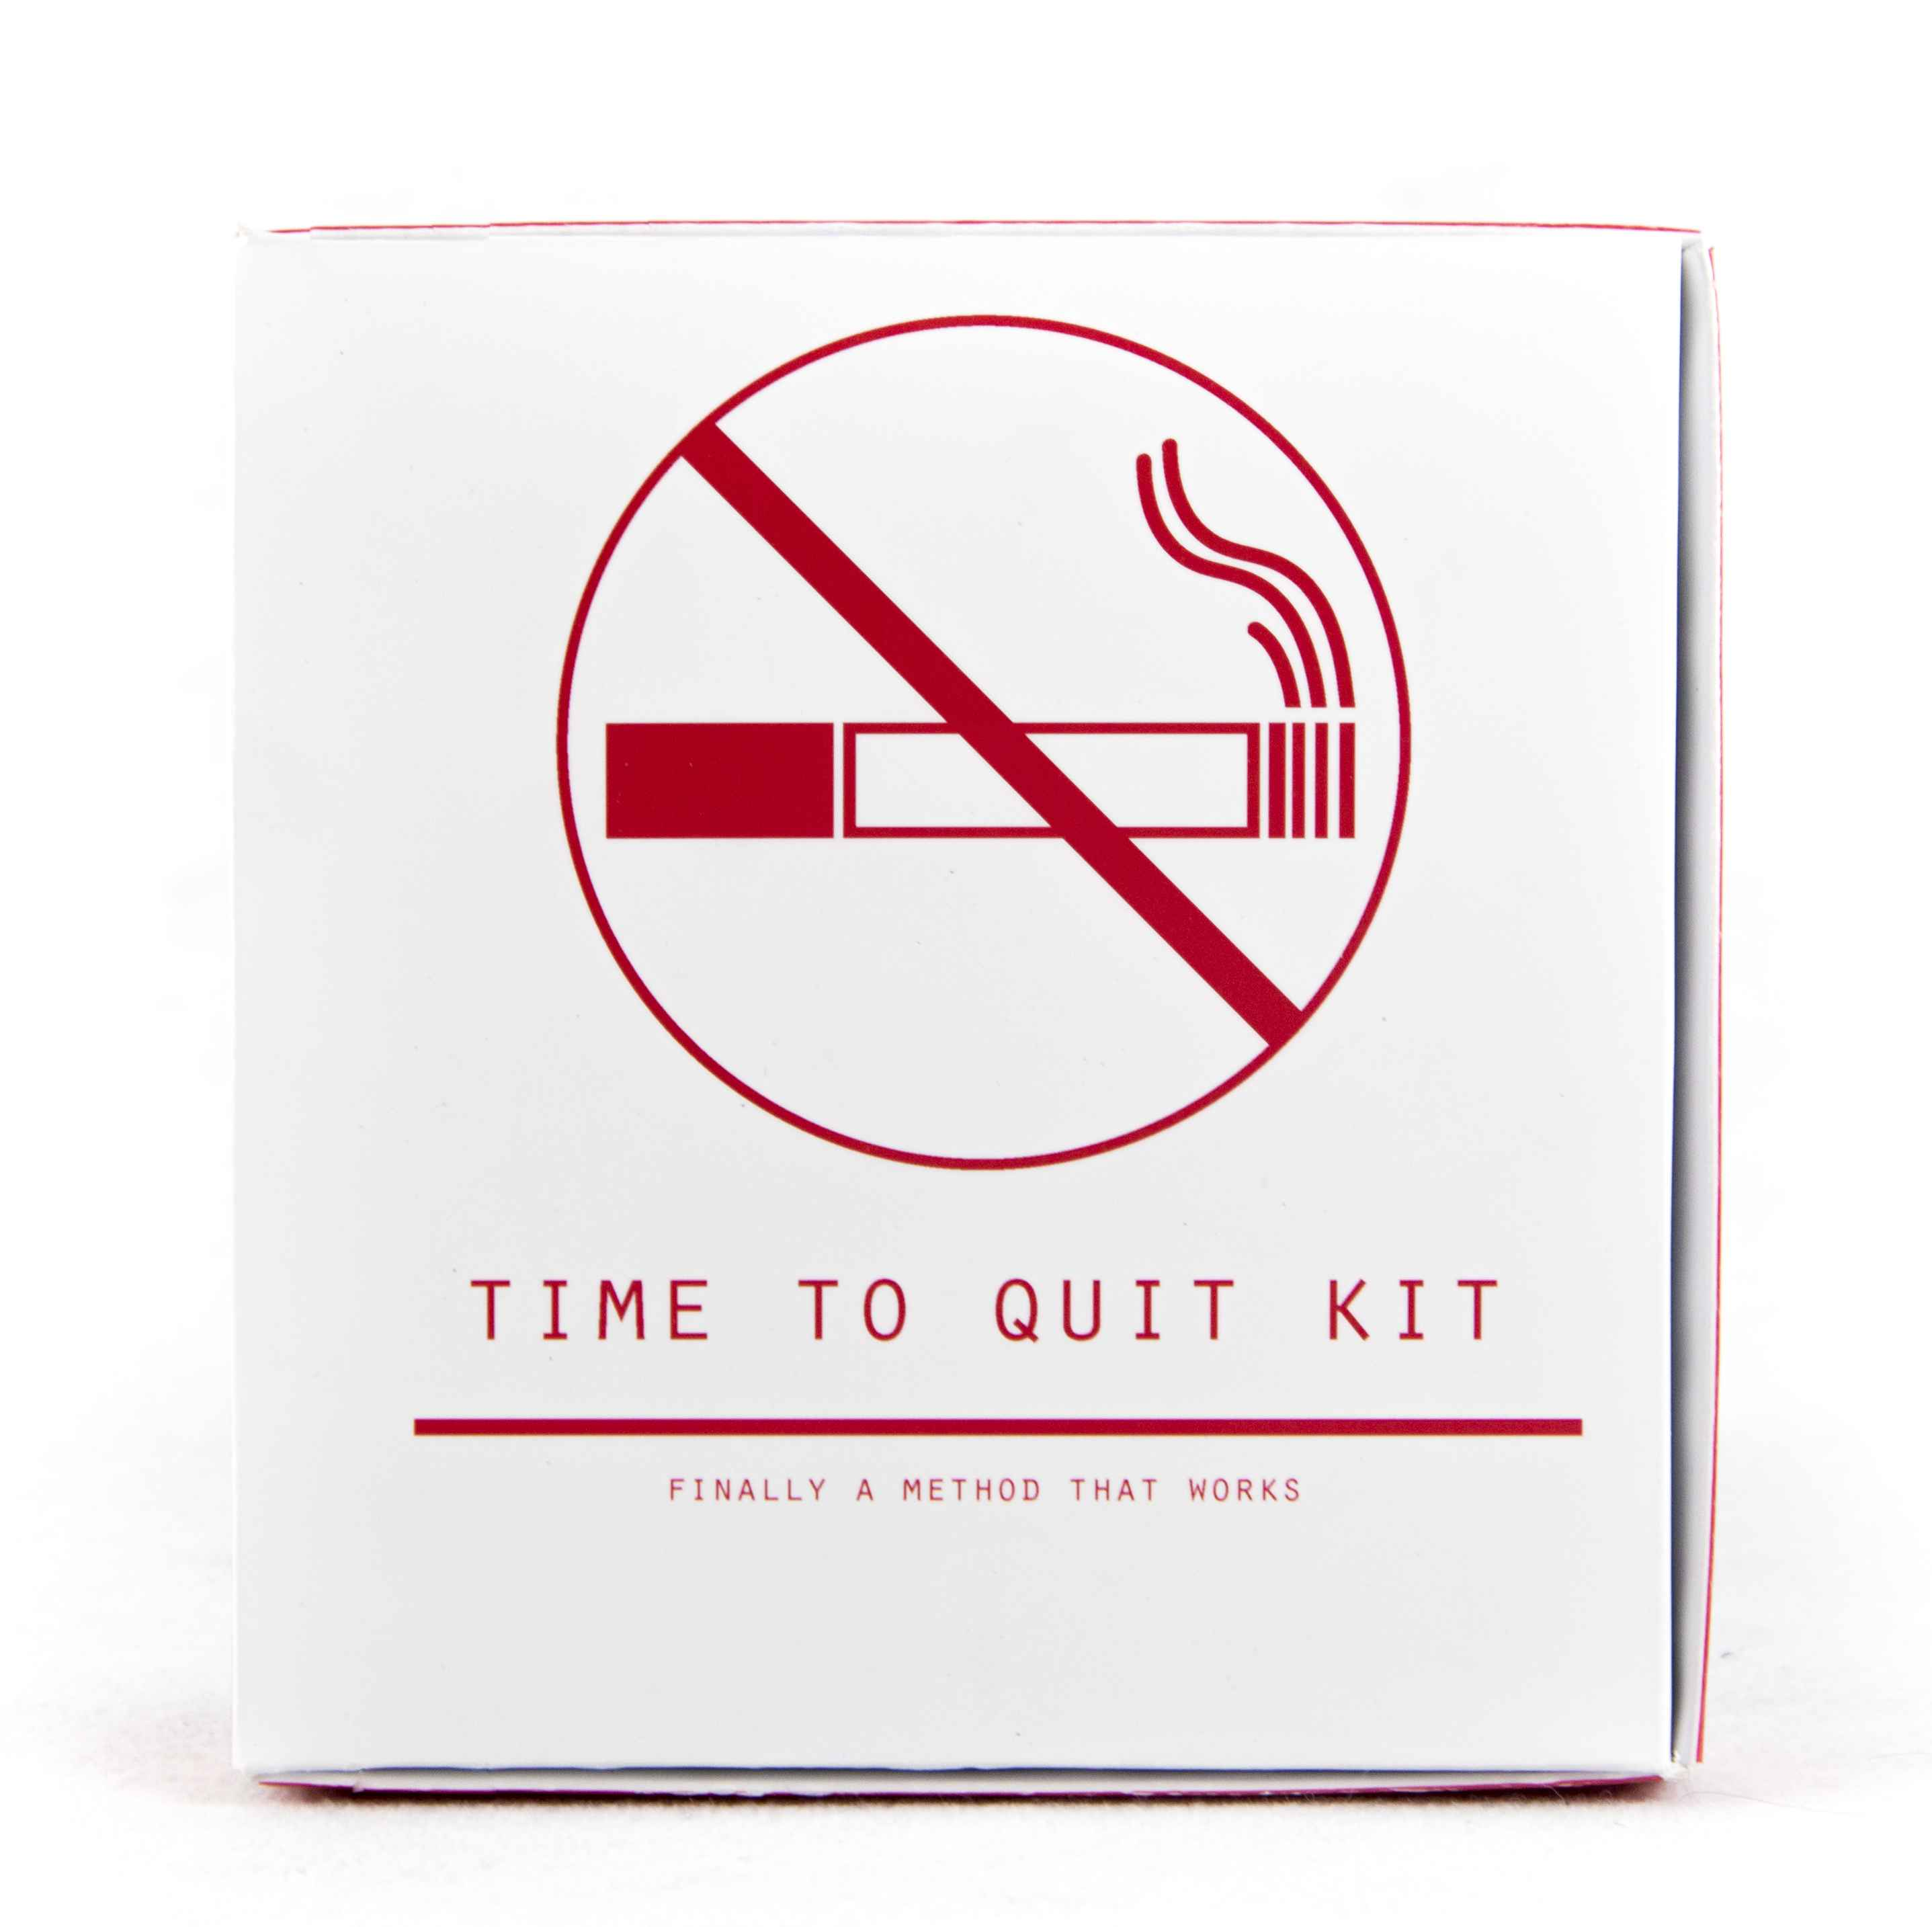 dustin-keeslar-portfolio-fort-wayne-indiana-graphic-design-quit-smoking-kit1